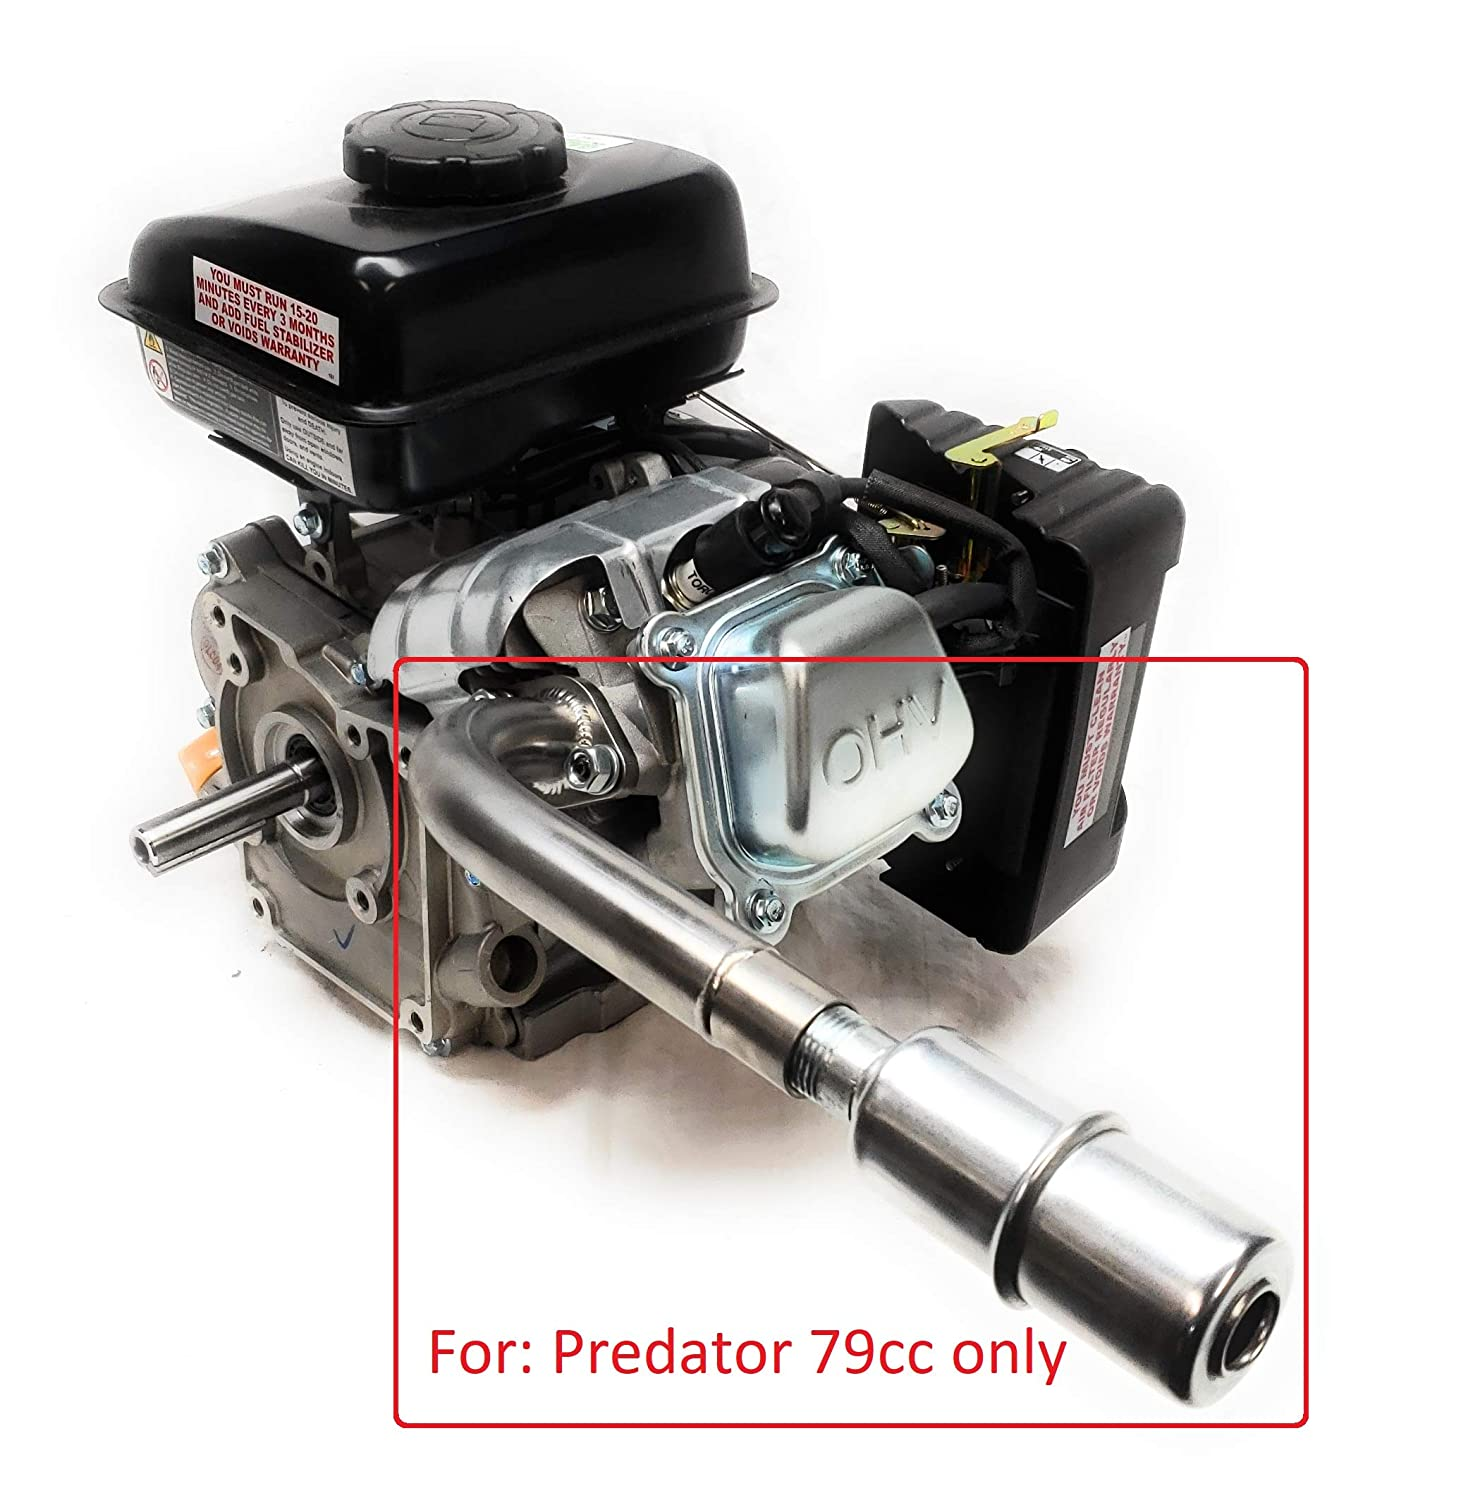 Mini Bike. Predator 3HP 79cc from Harbor Freight Tool ARSPORT Exhaust with Muffler for